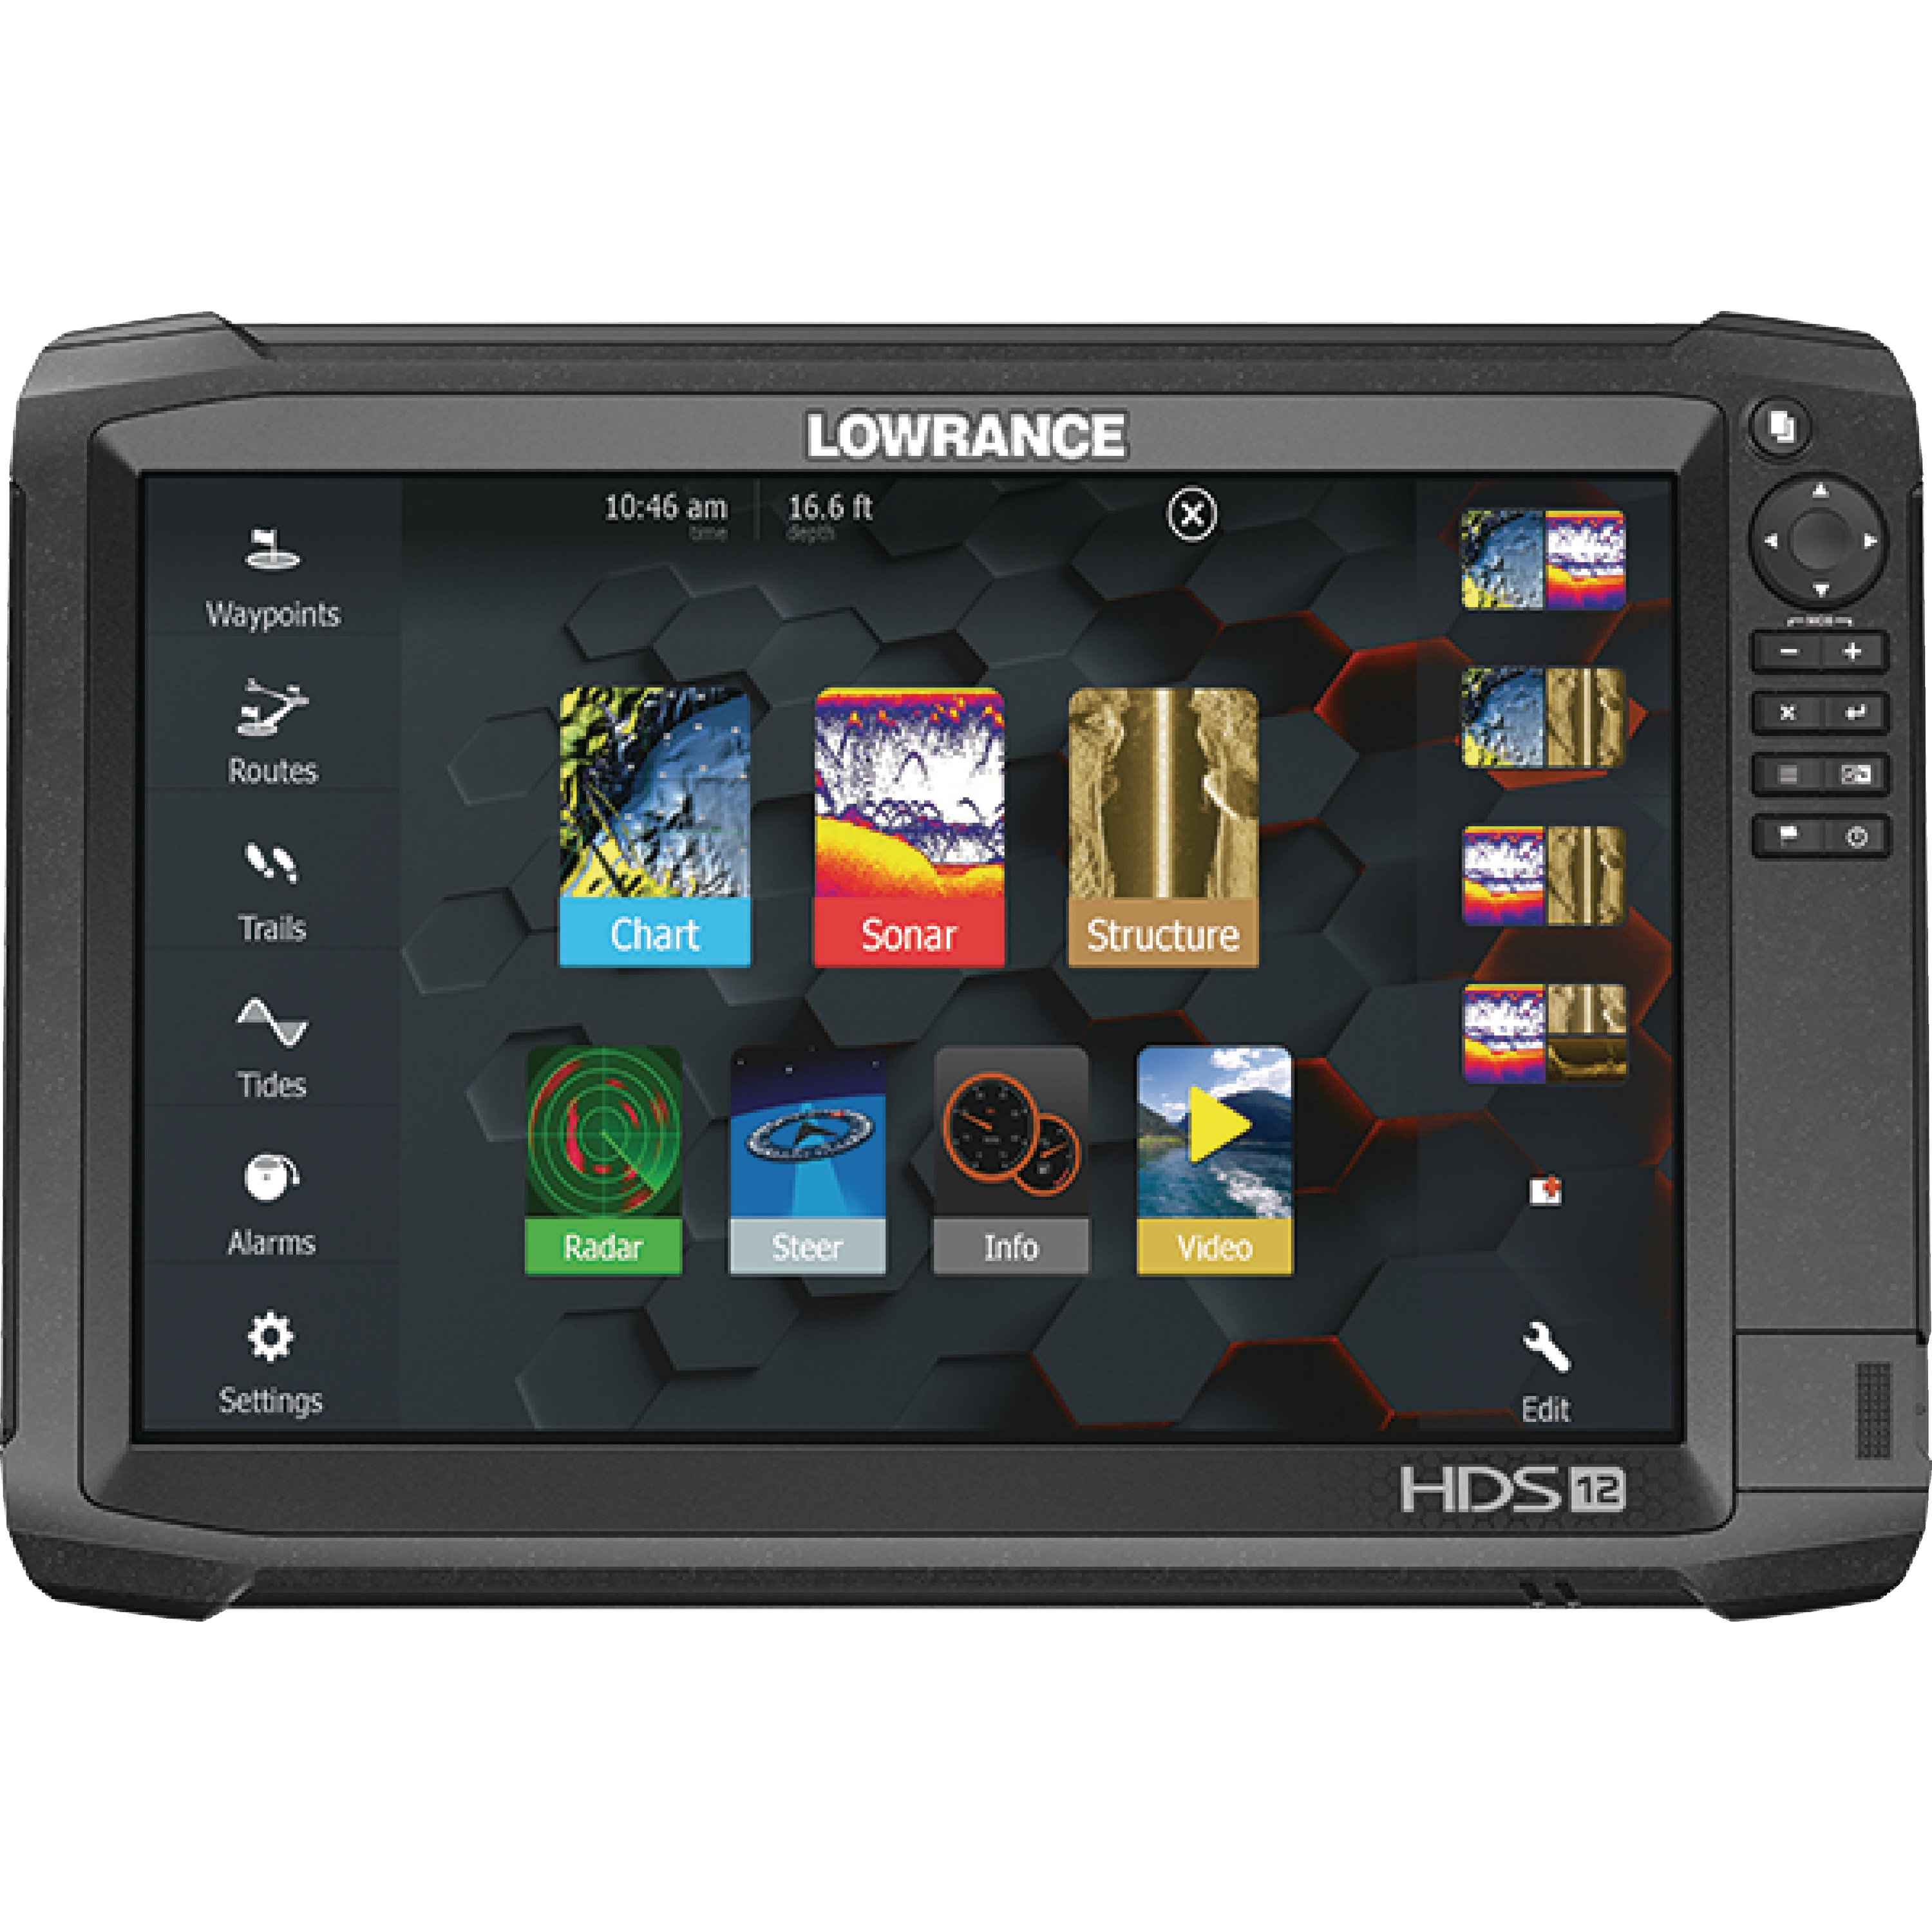 "Lowrance 000-13686-002 HDS Carbon 12 Fishfinder & Chartplotter with StructureScan 3D, SideScan Imaging, DownScan Imaging & 12"" Display"